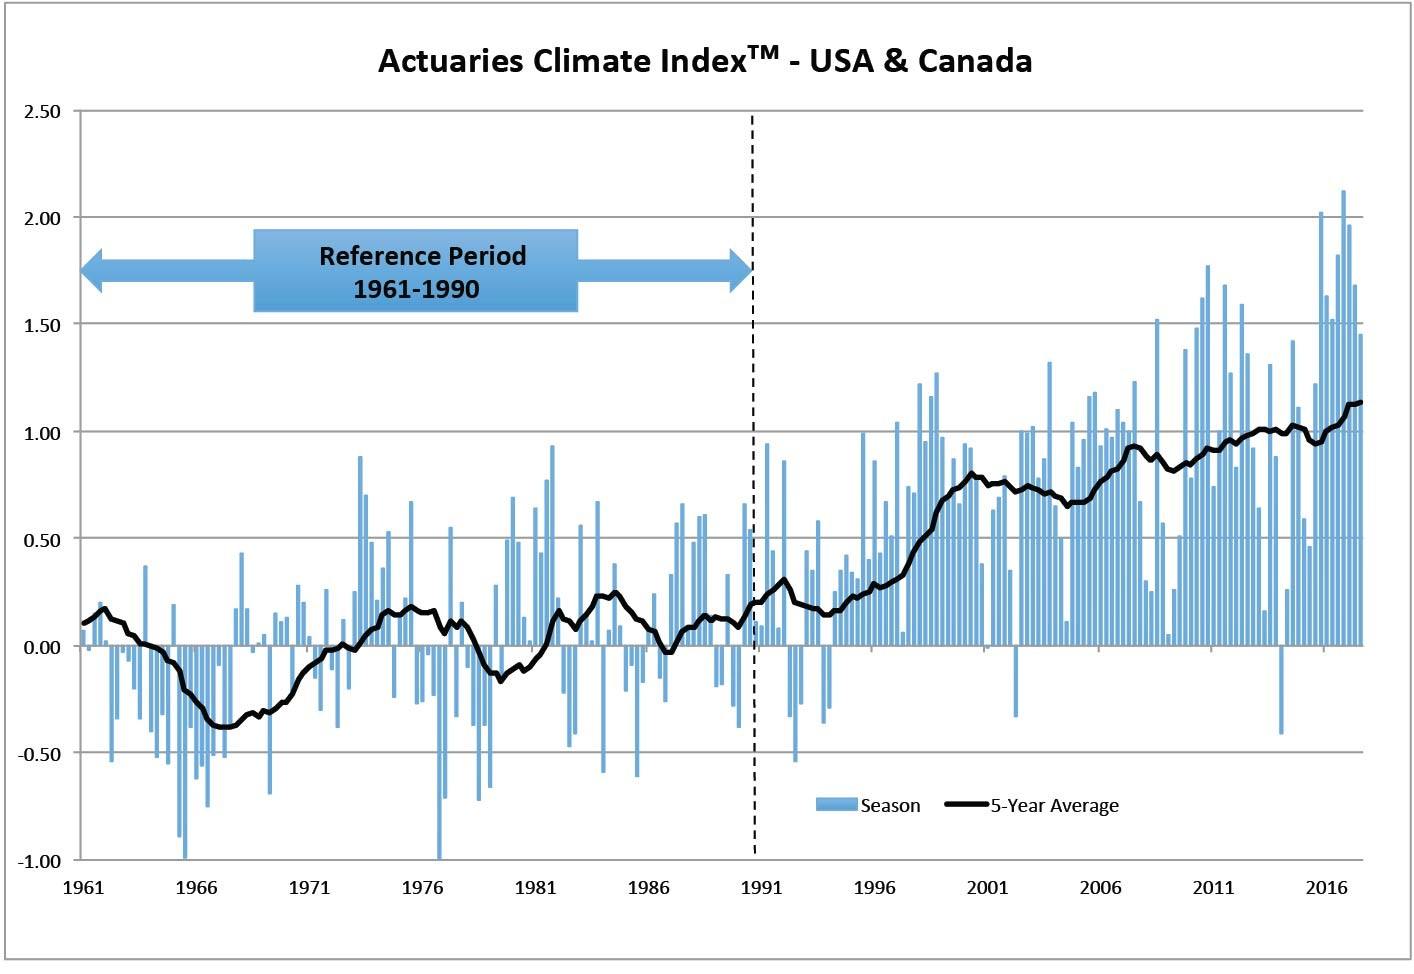 Actuaries Climate Index™ Summer 2017 Data Released